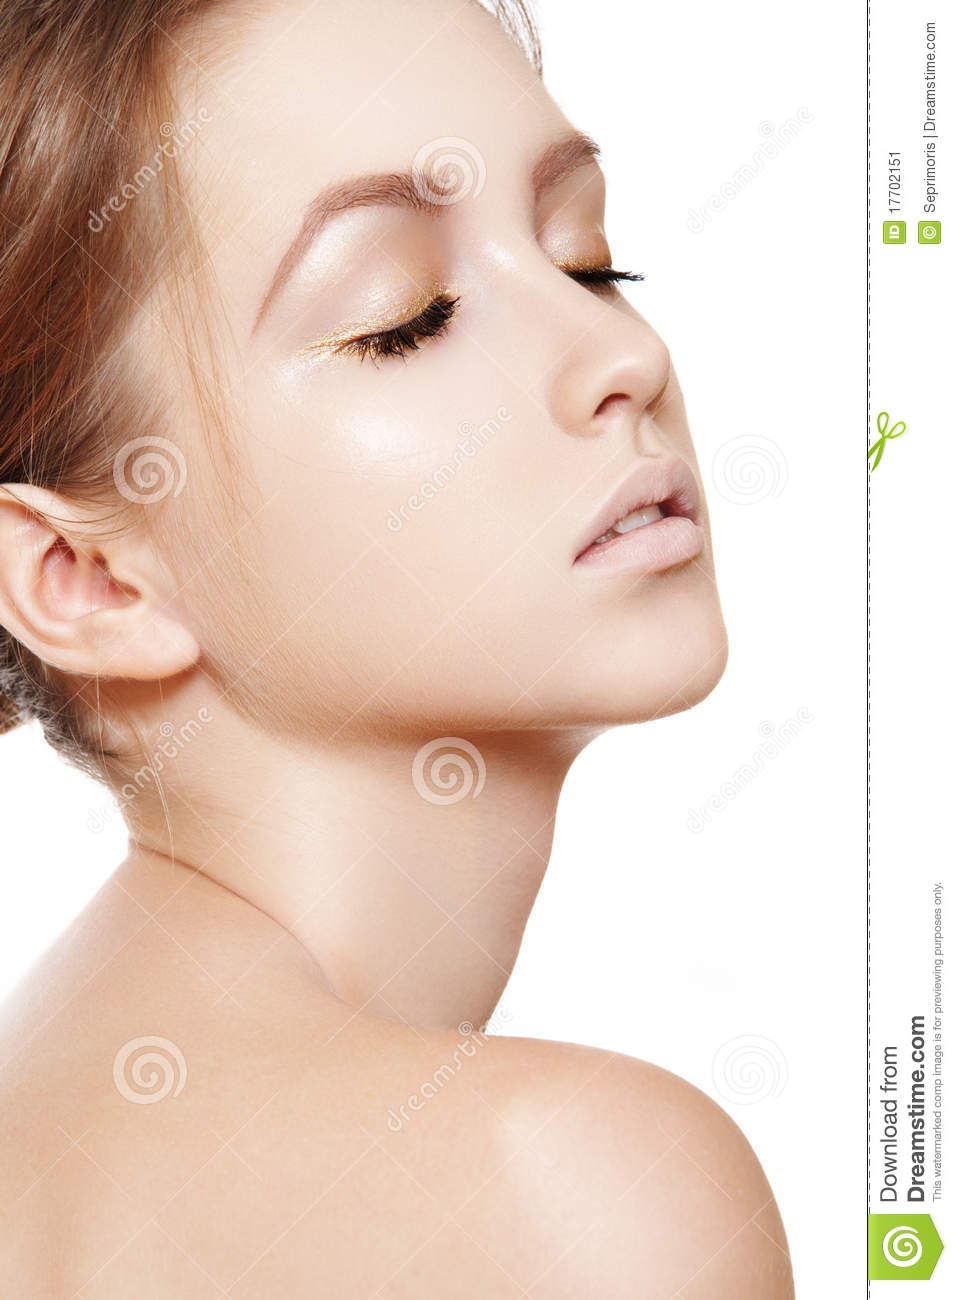 ... model face structure female model face profile female model face black